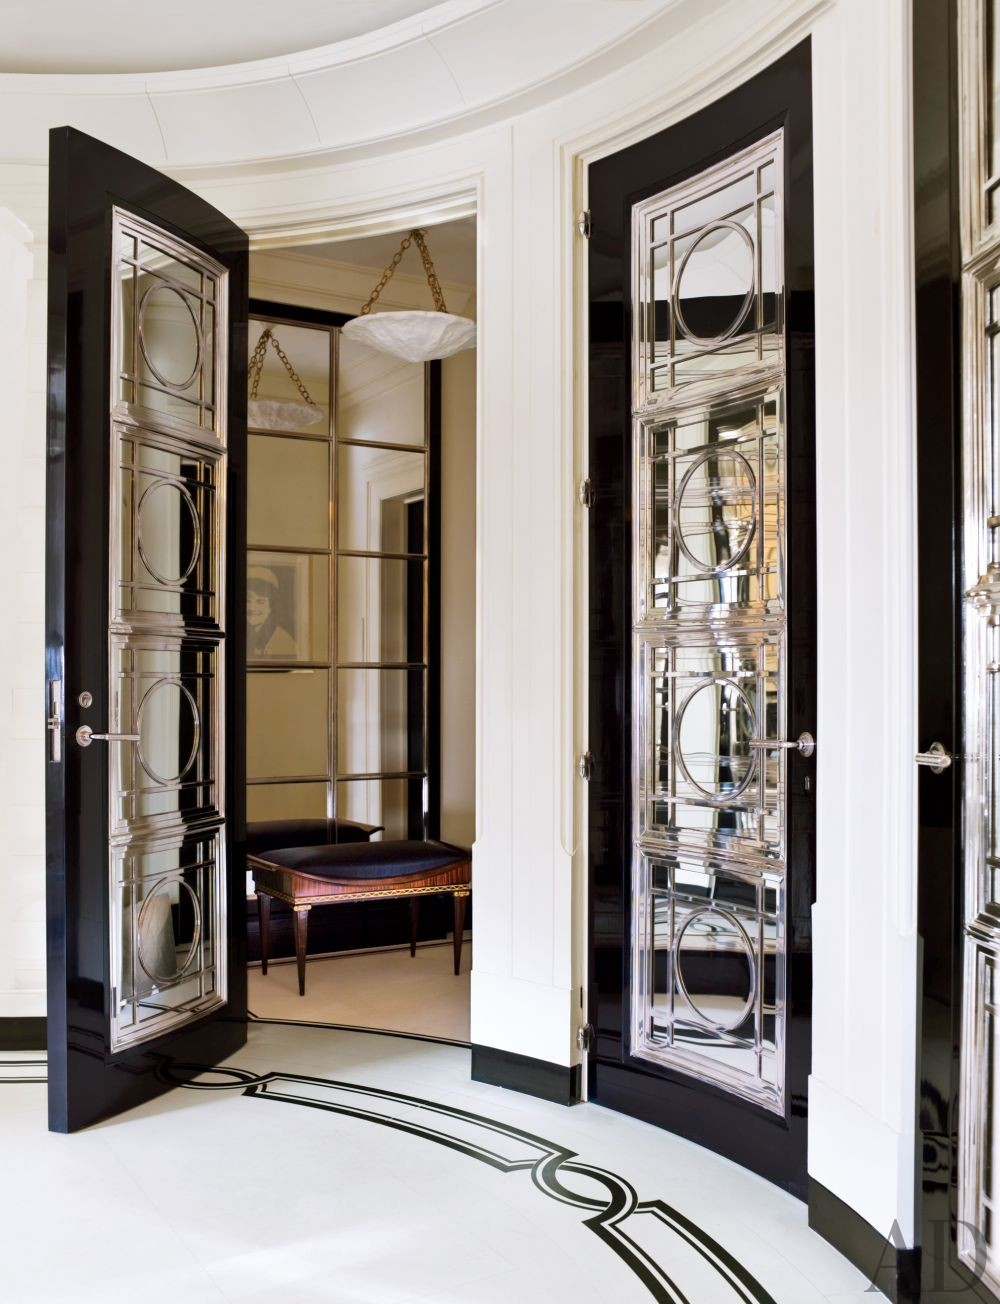 Traditional Entrance Hall by David Kleinberg Design Associates and David Kleinberg Design Associates in New York, New York